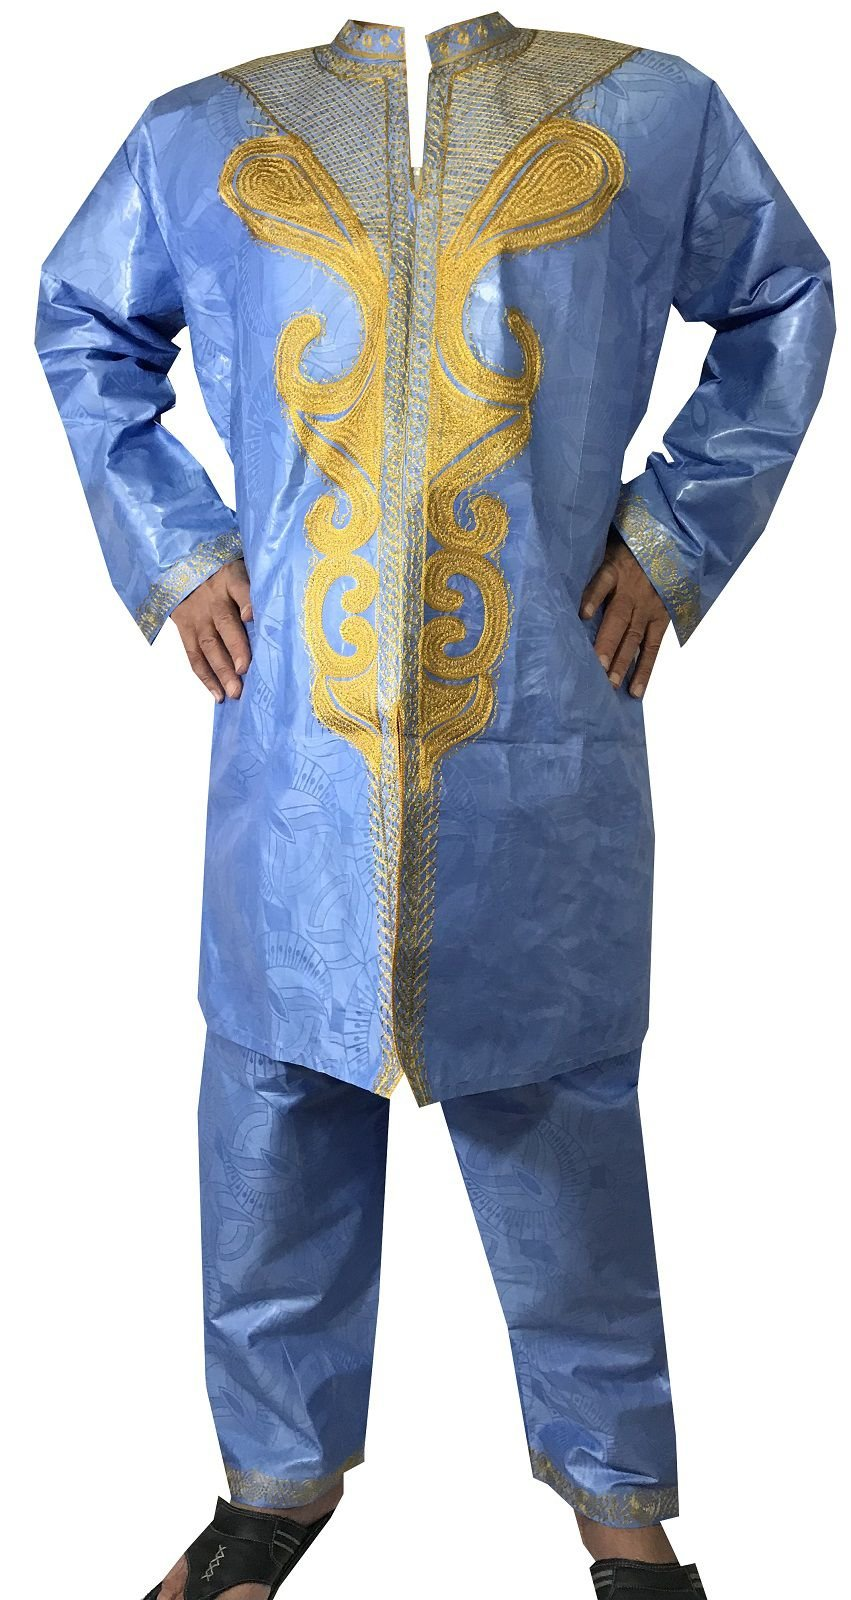 DecoraApparel African Men Pant Suit Brocade Embroidered 3PCs Suits Bright Colors